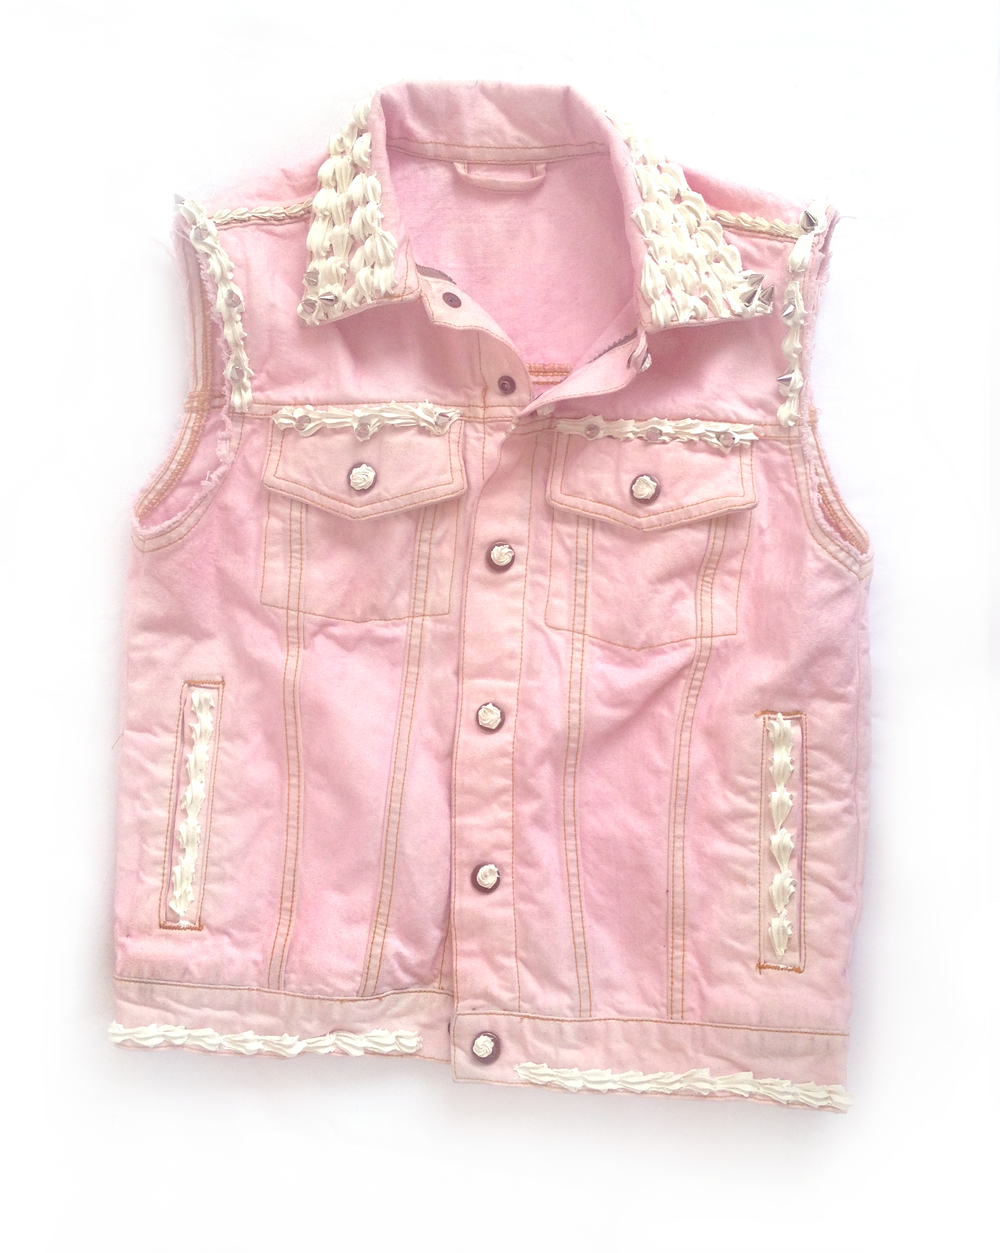 Dylan Garrett Smith Blondie Decoden punk vest front